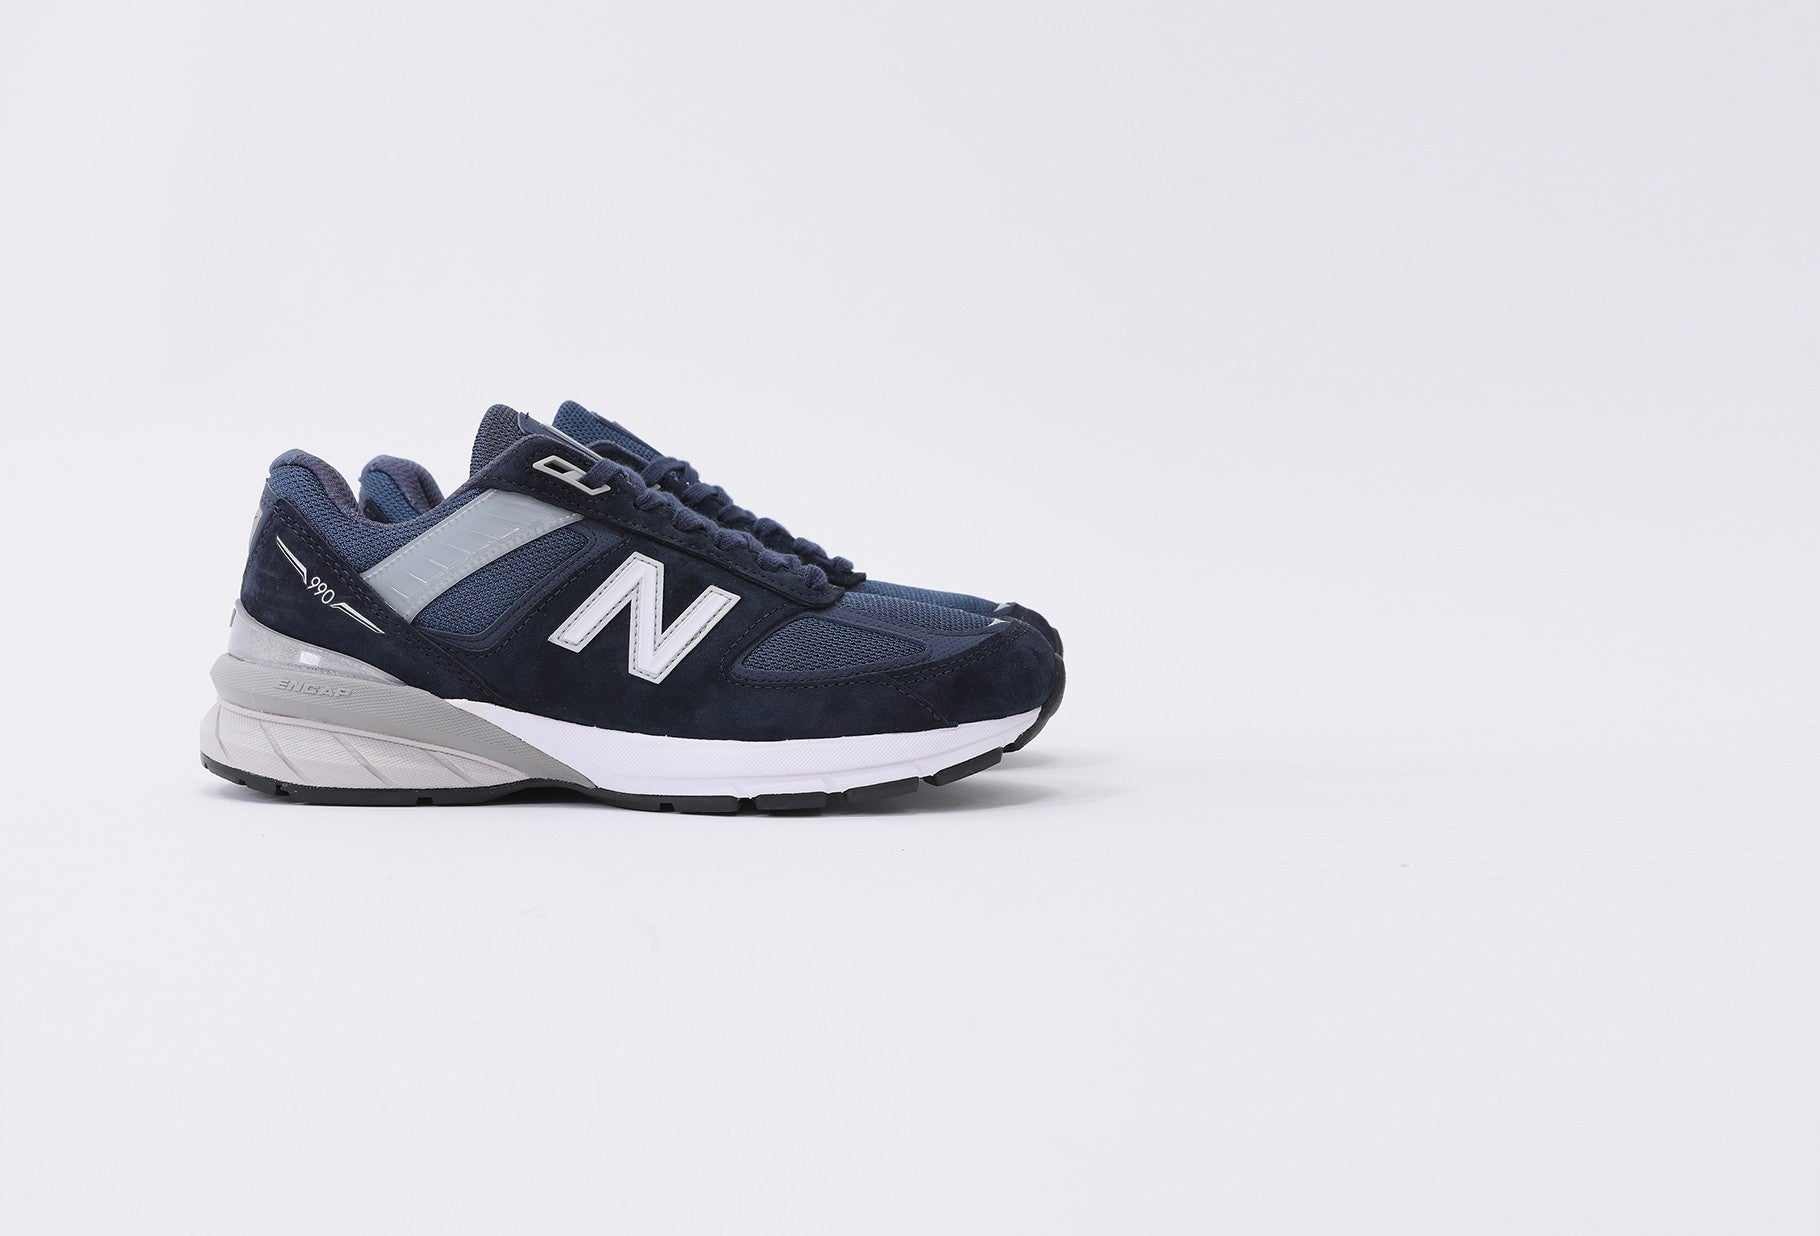 Junya Watanabe COMME des GARCONS x New Balance M990JN5 Made in USA-Preorder Item-Navy Selected Shop